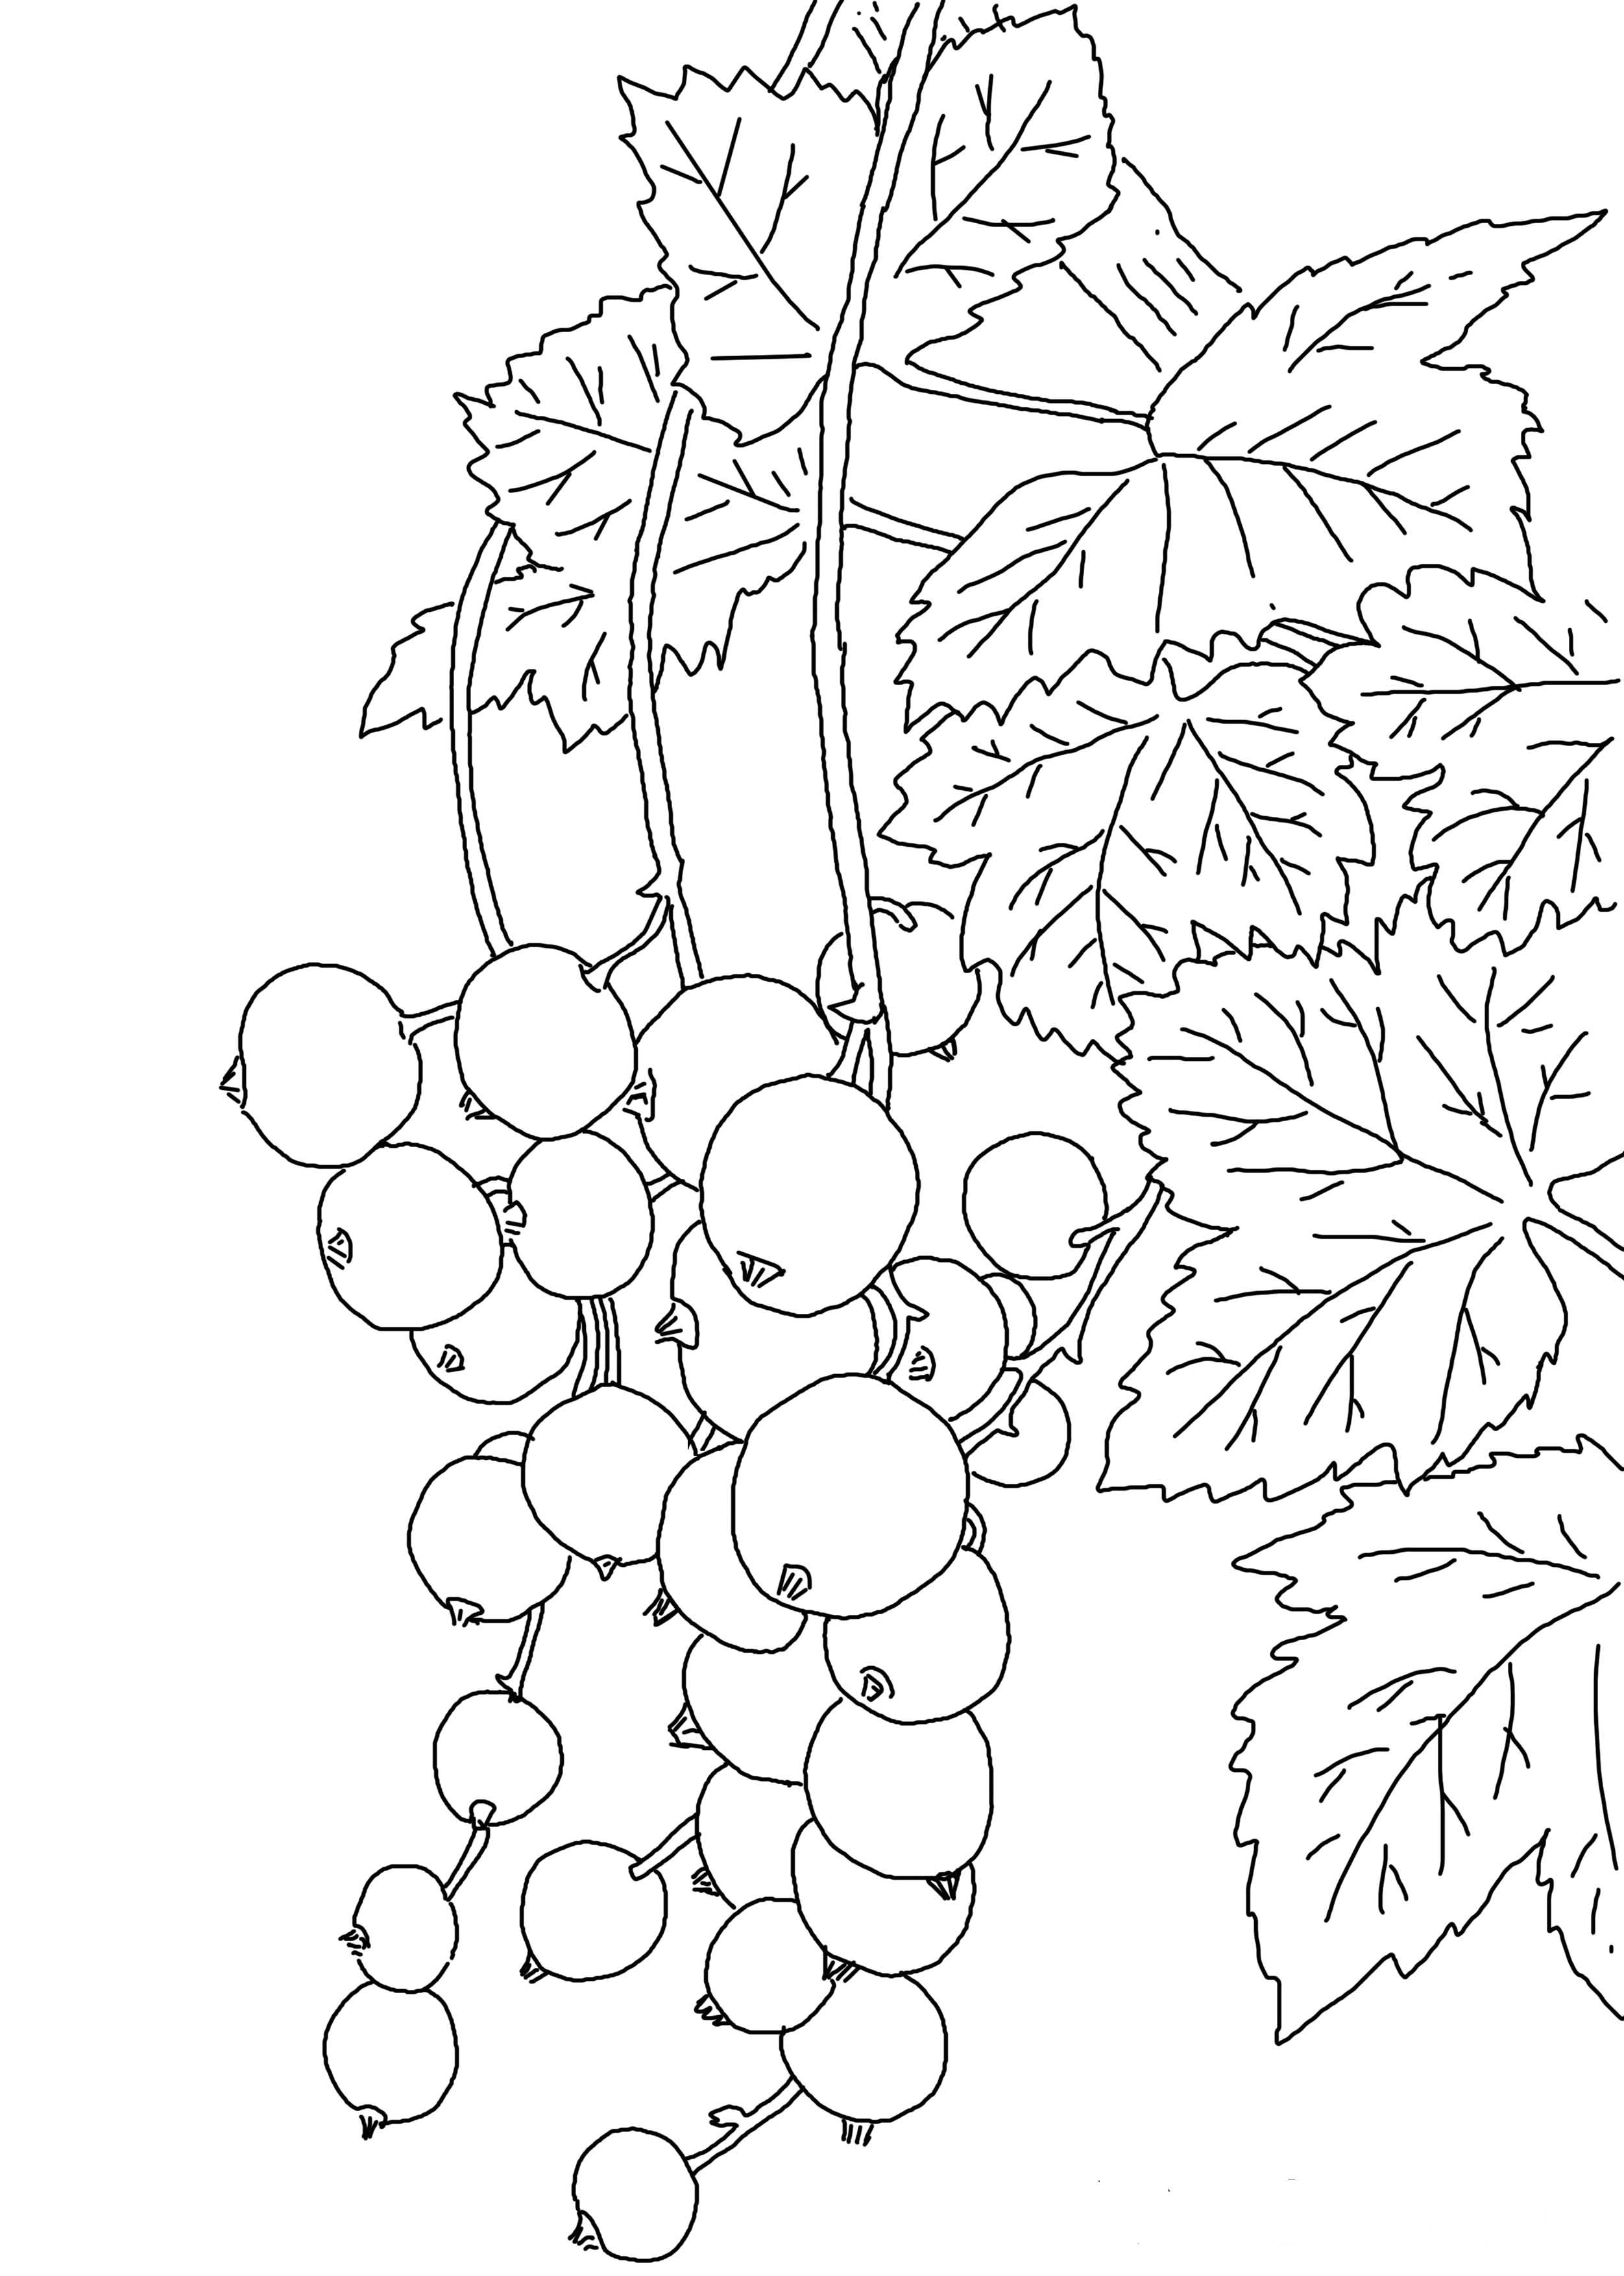 Currant Coloring Pages To Download And Print For Free